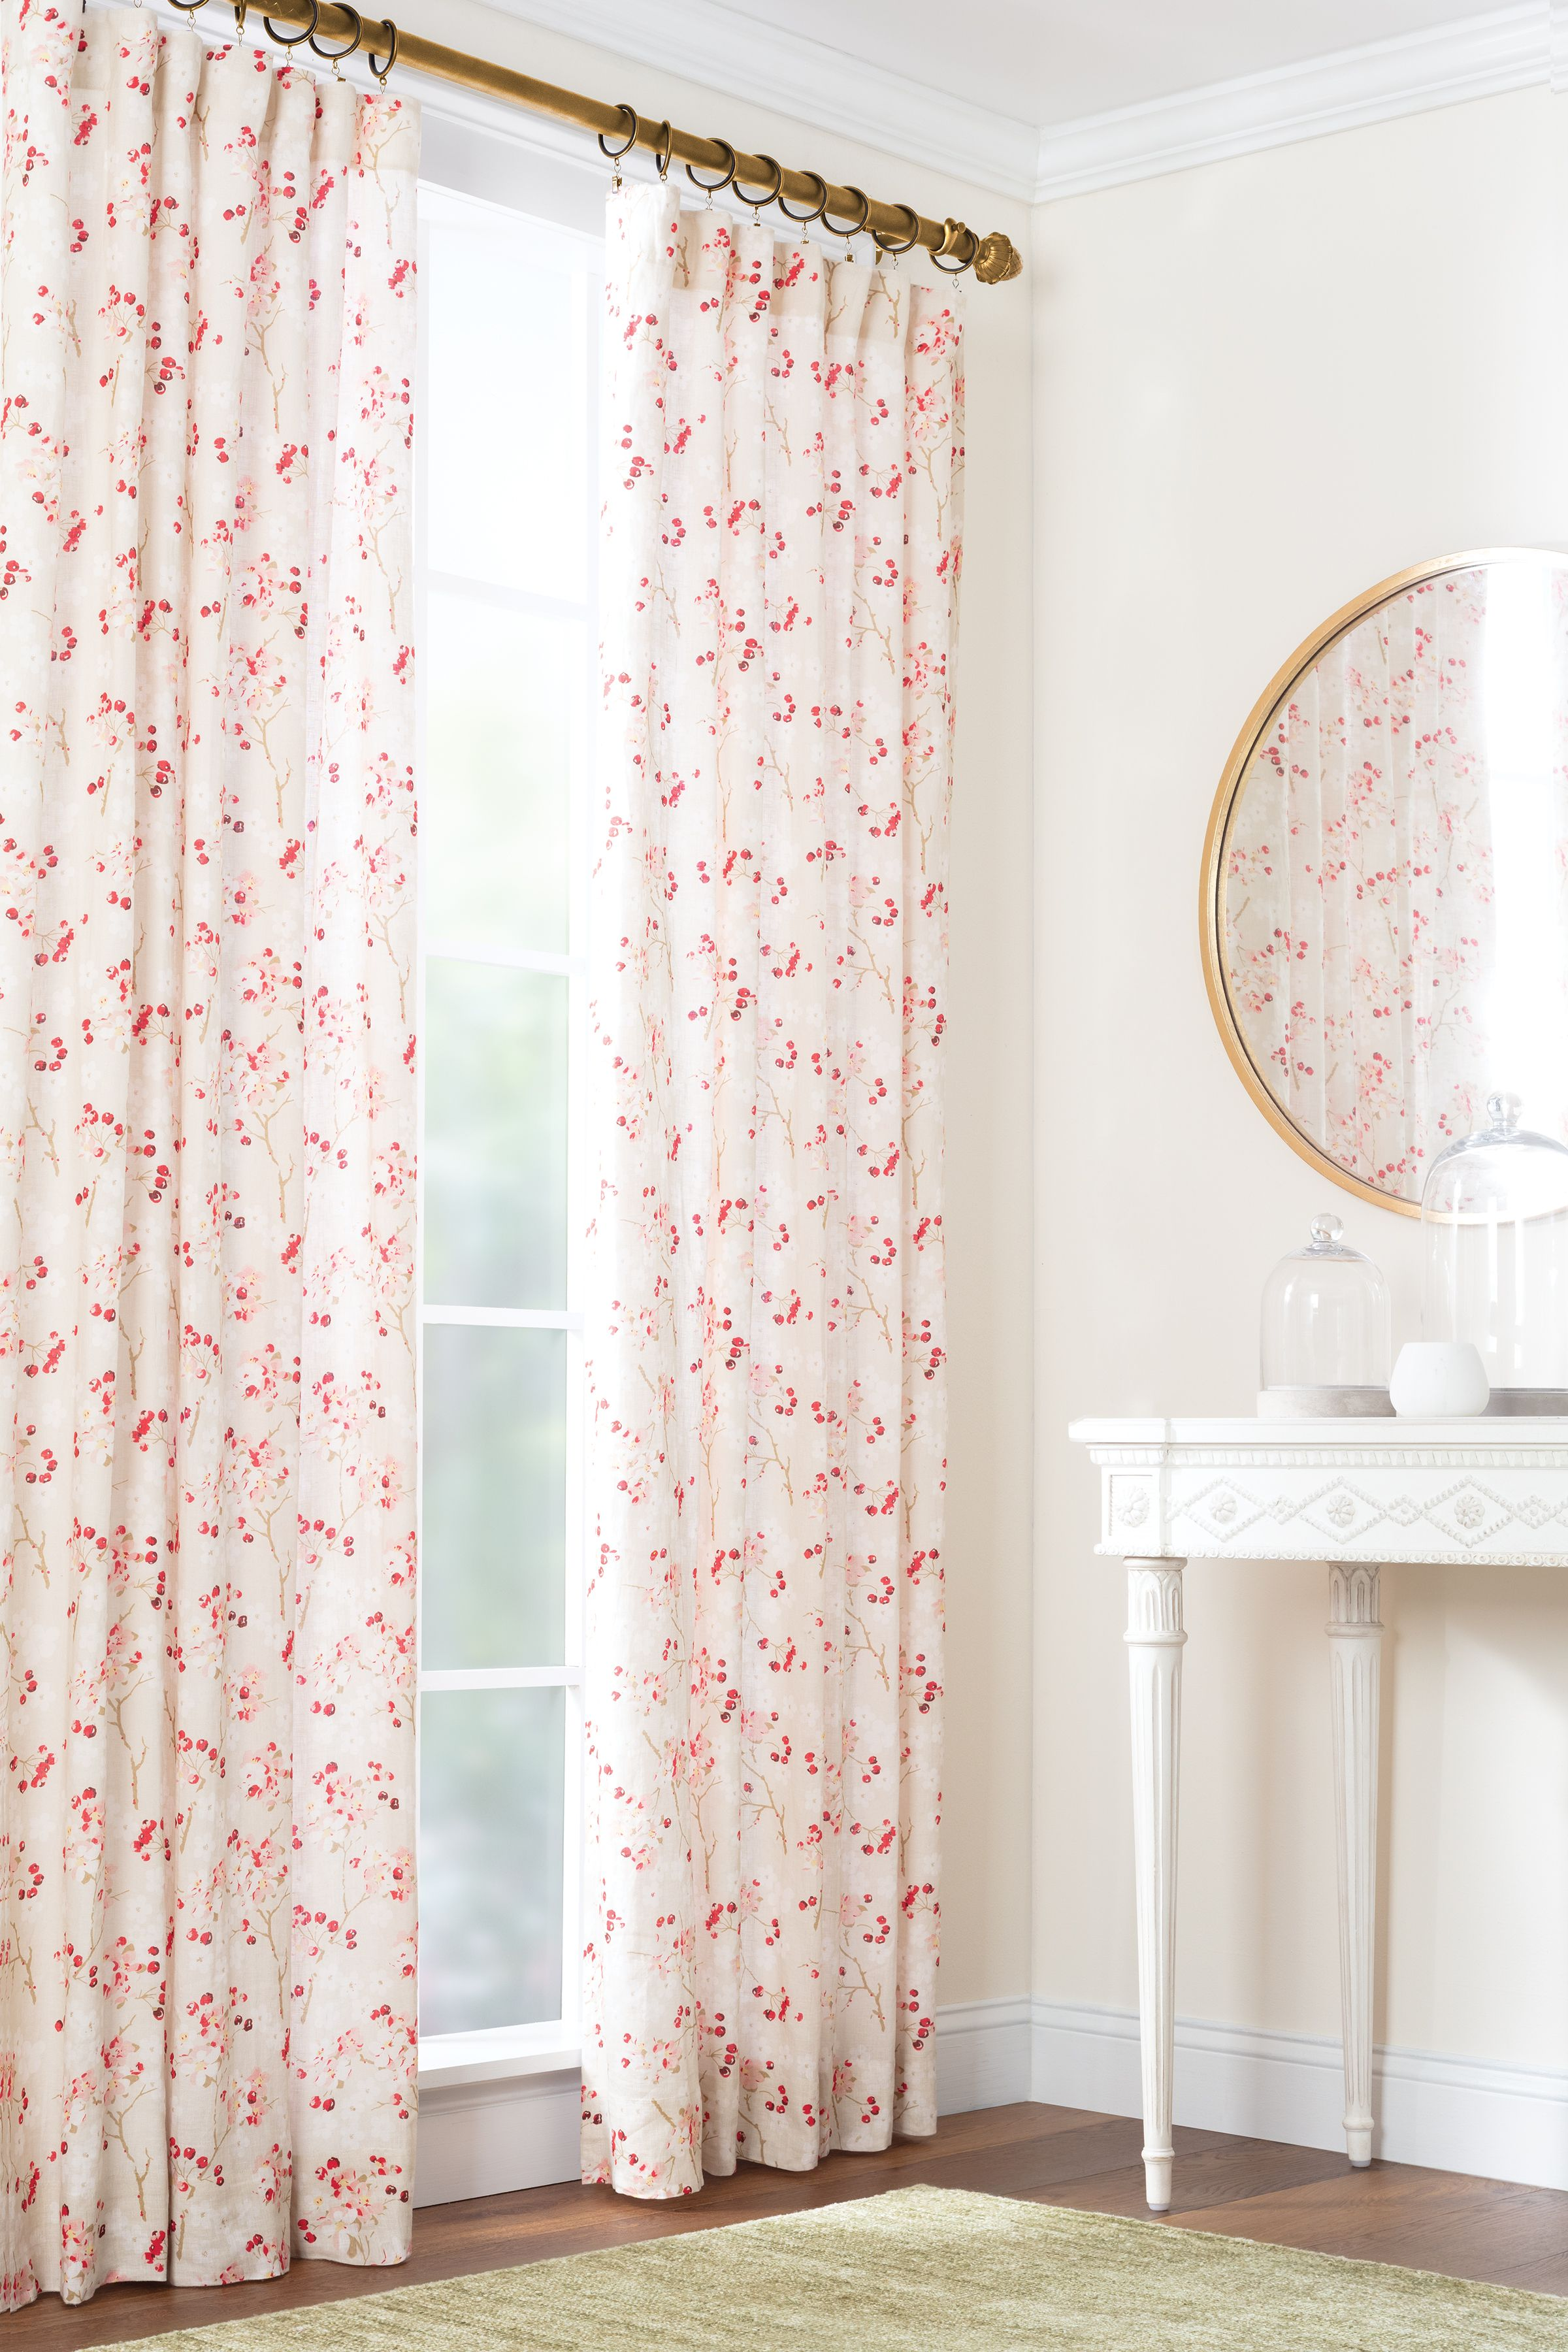 Cherry Blossom Curtain Panel The Outlet Panel Curtains Curtains Printed Linen Fabric